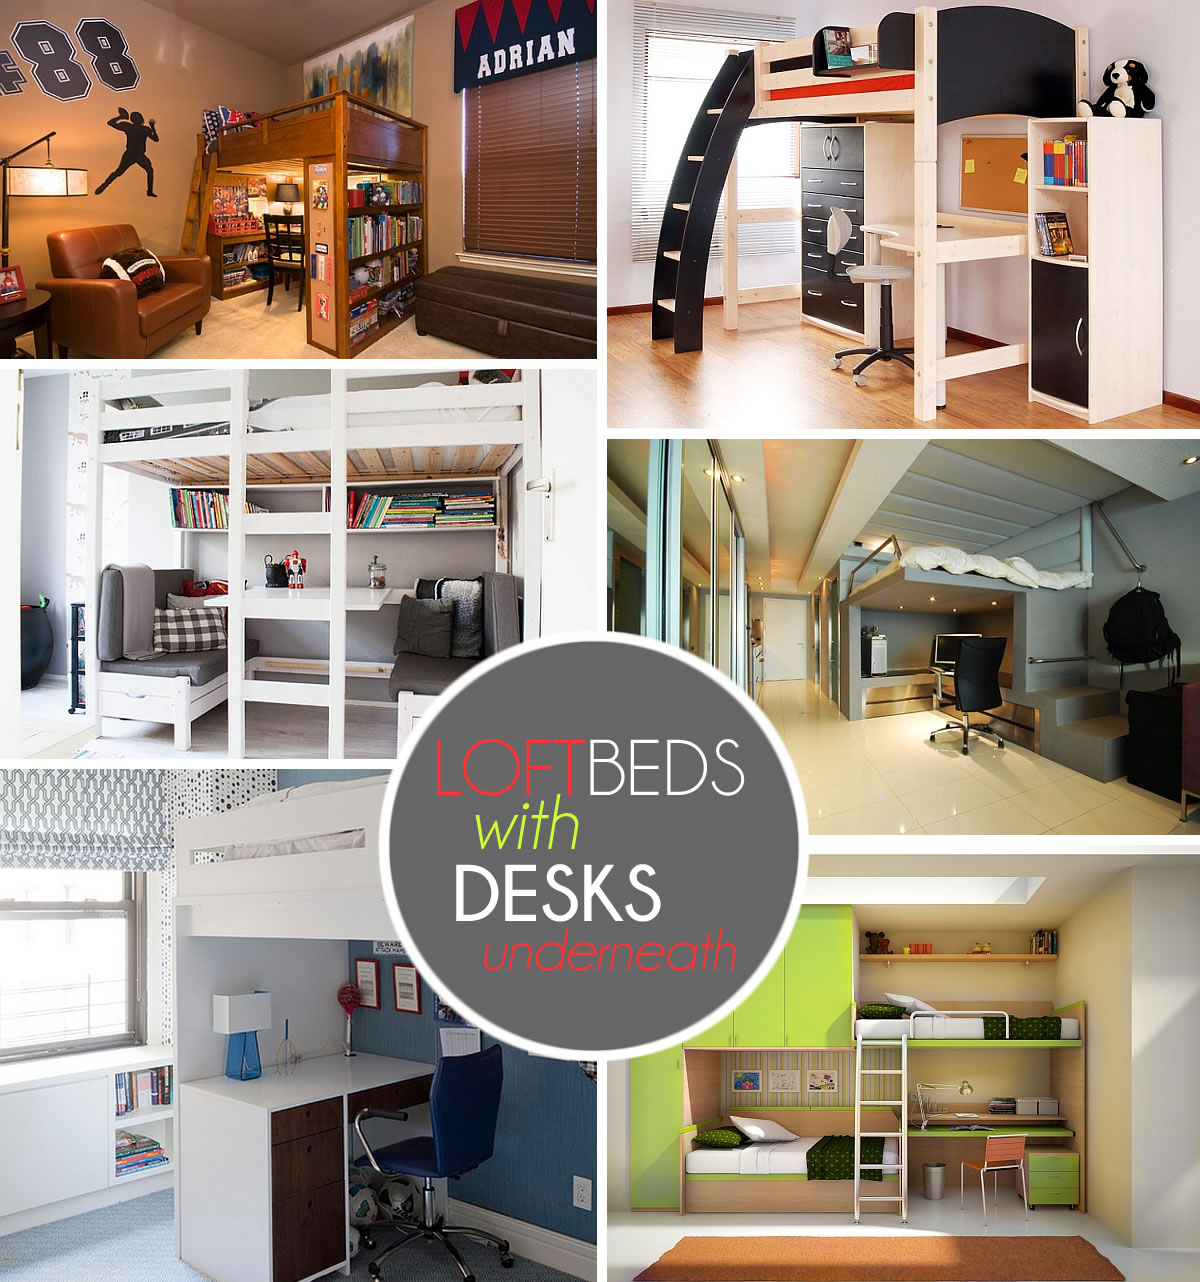 Bunk beds for adults with desk - Bunk Beds For Adults With Desk 3